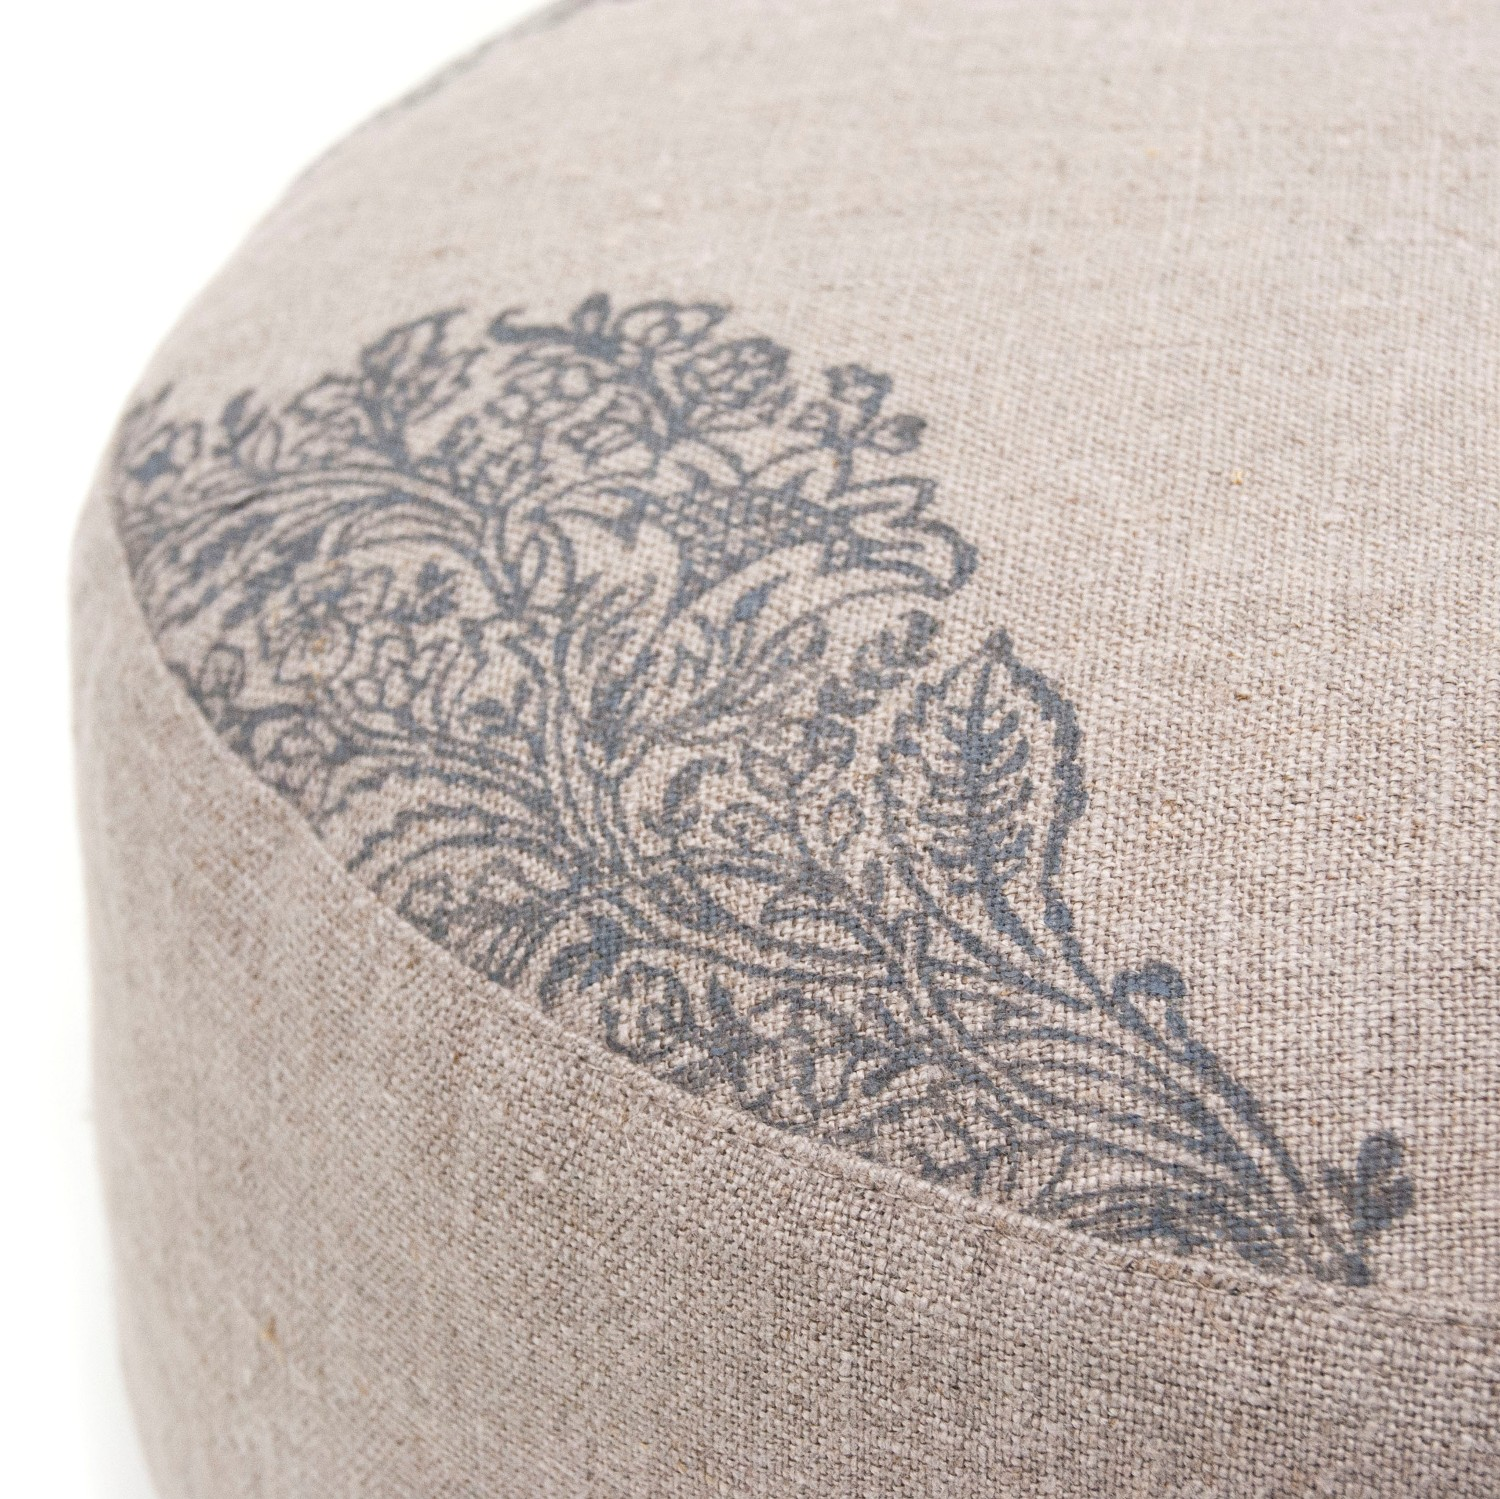 A close up for the print on the natural meditation cushions by Pure Prana Label